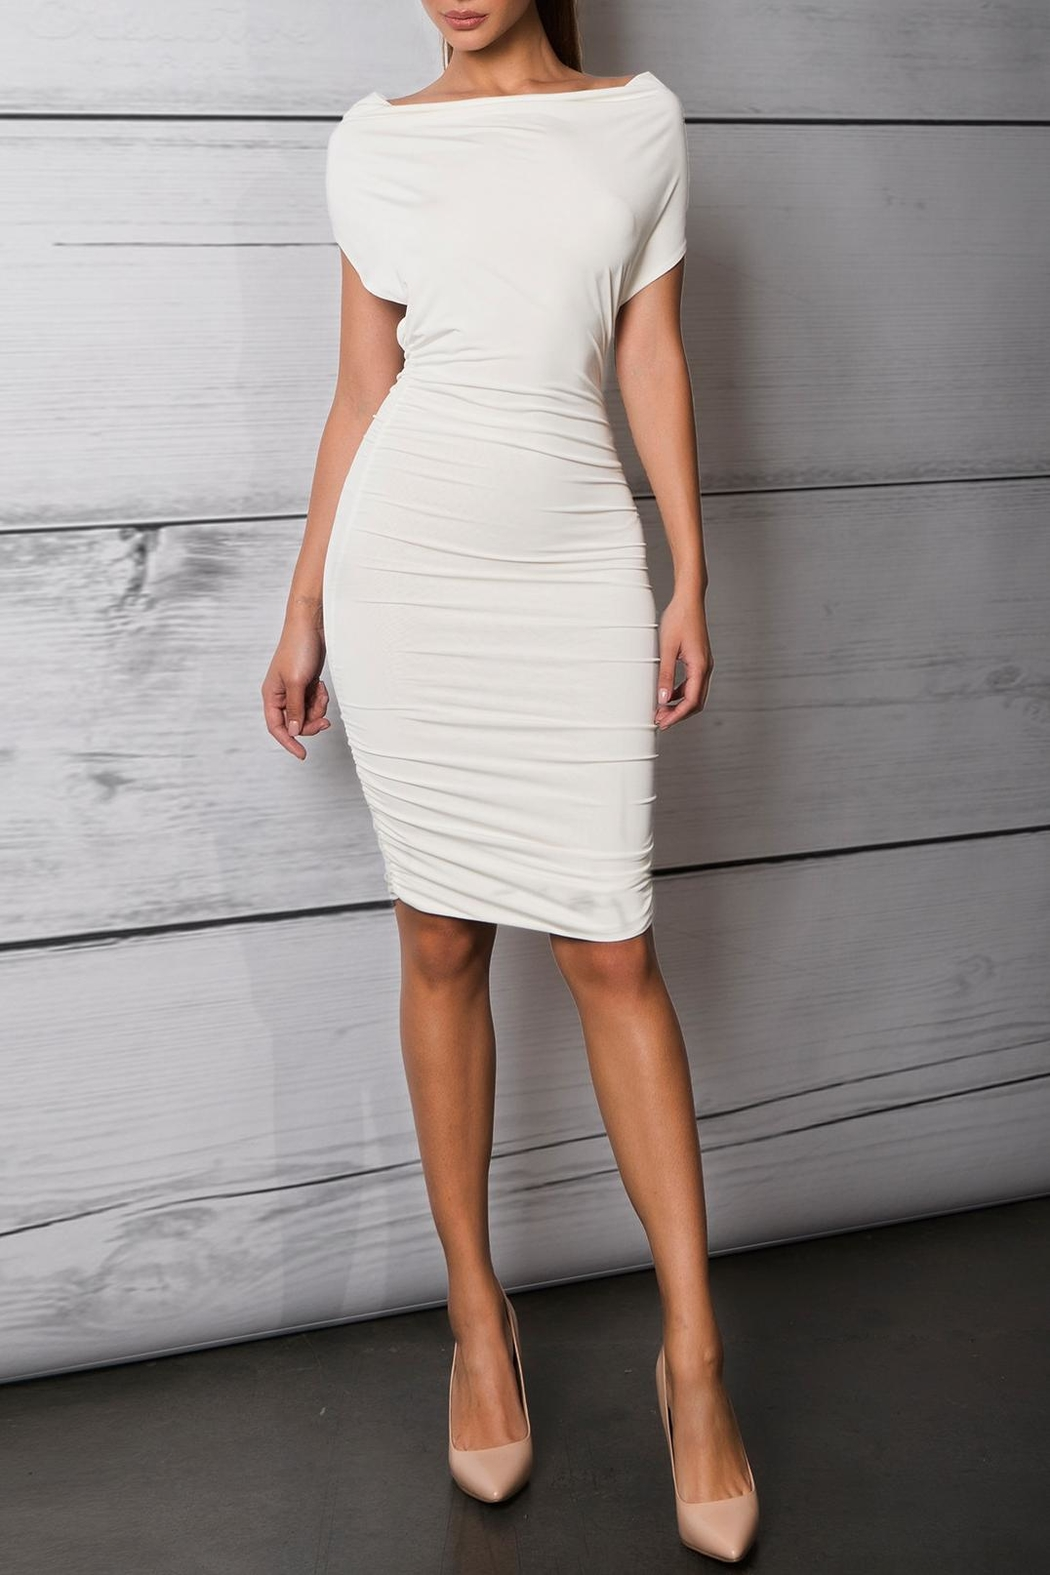 Savee Couture Boat Neck Bodycon Dress From Toronto By